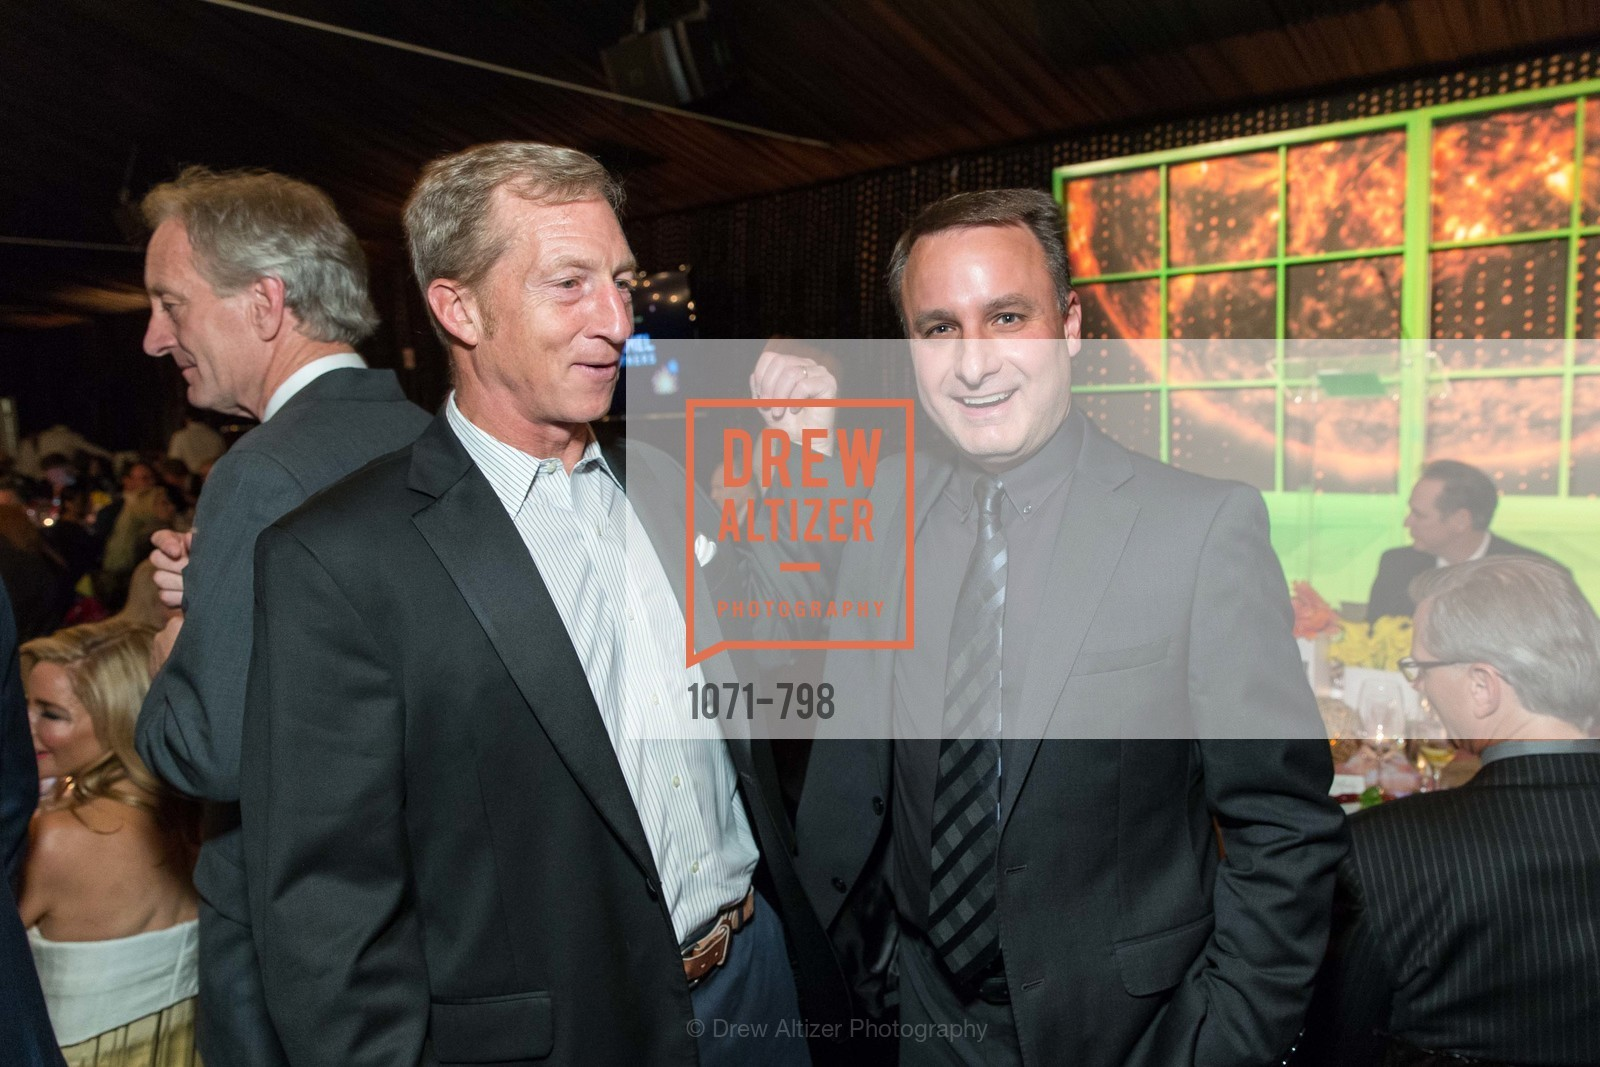 Tom Steyer, Jon Foley, CALIFORNIA ACADEMY OF SCIENCES - Big Bang Gala 2015, US, April 24th, 2015,Drew Altizer, Drew Altizer Photography, full-service agency, private events, San Francisco photographer, photographer california